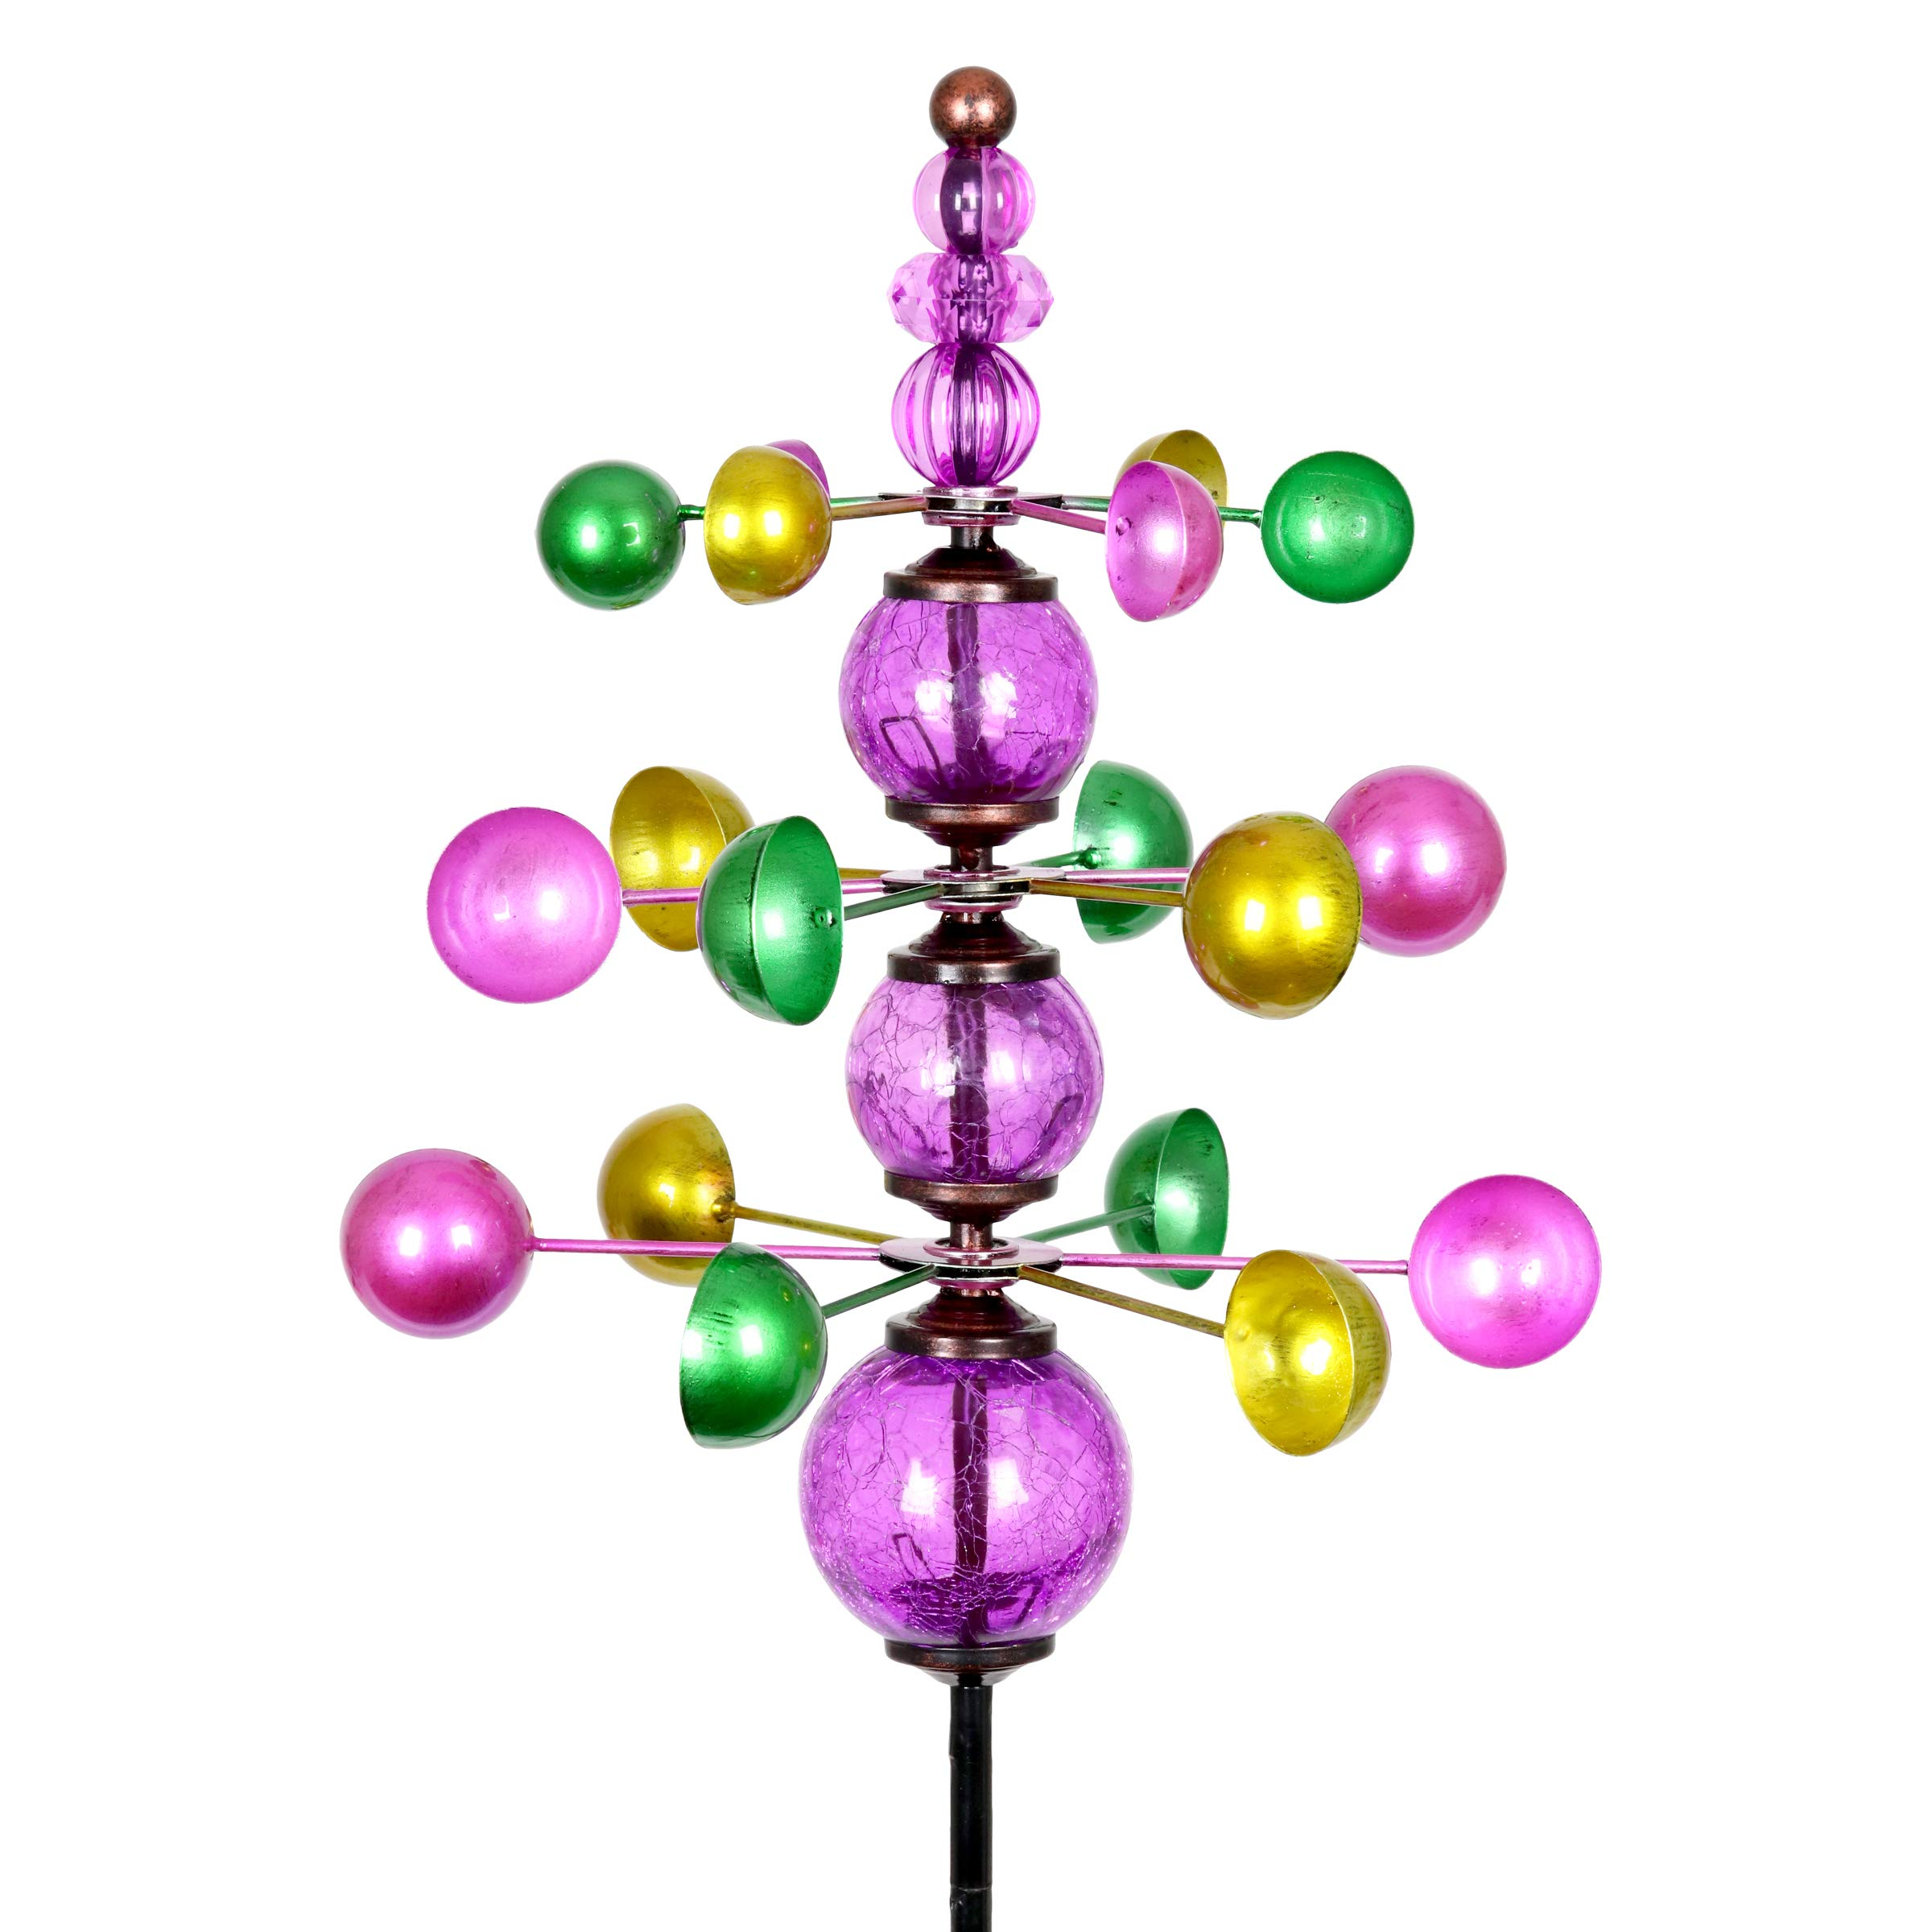 """Exhart Colorful Helix Yard Mobile, Three-Tier Vertical Wind Spinners with Purple Glass Crackle Balls Garden Stake – Green, Gold & Purple Garden Spinners - Kinetic Art Decor, 11.5"""" L by 48"""" W Inches"""